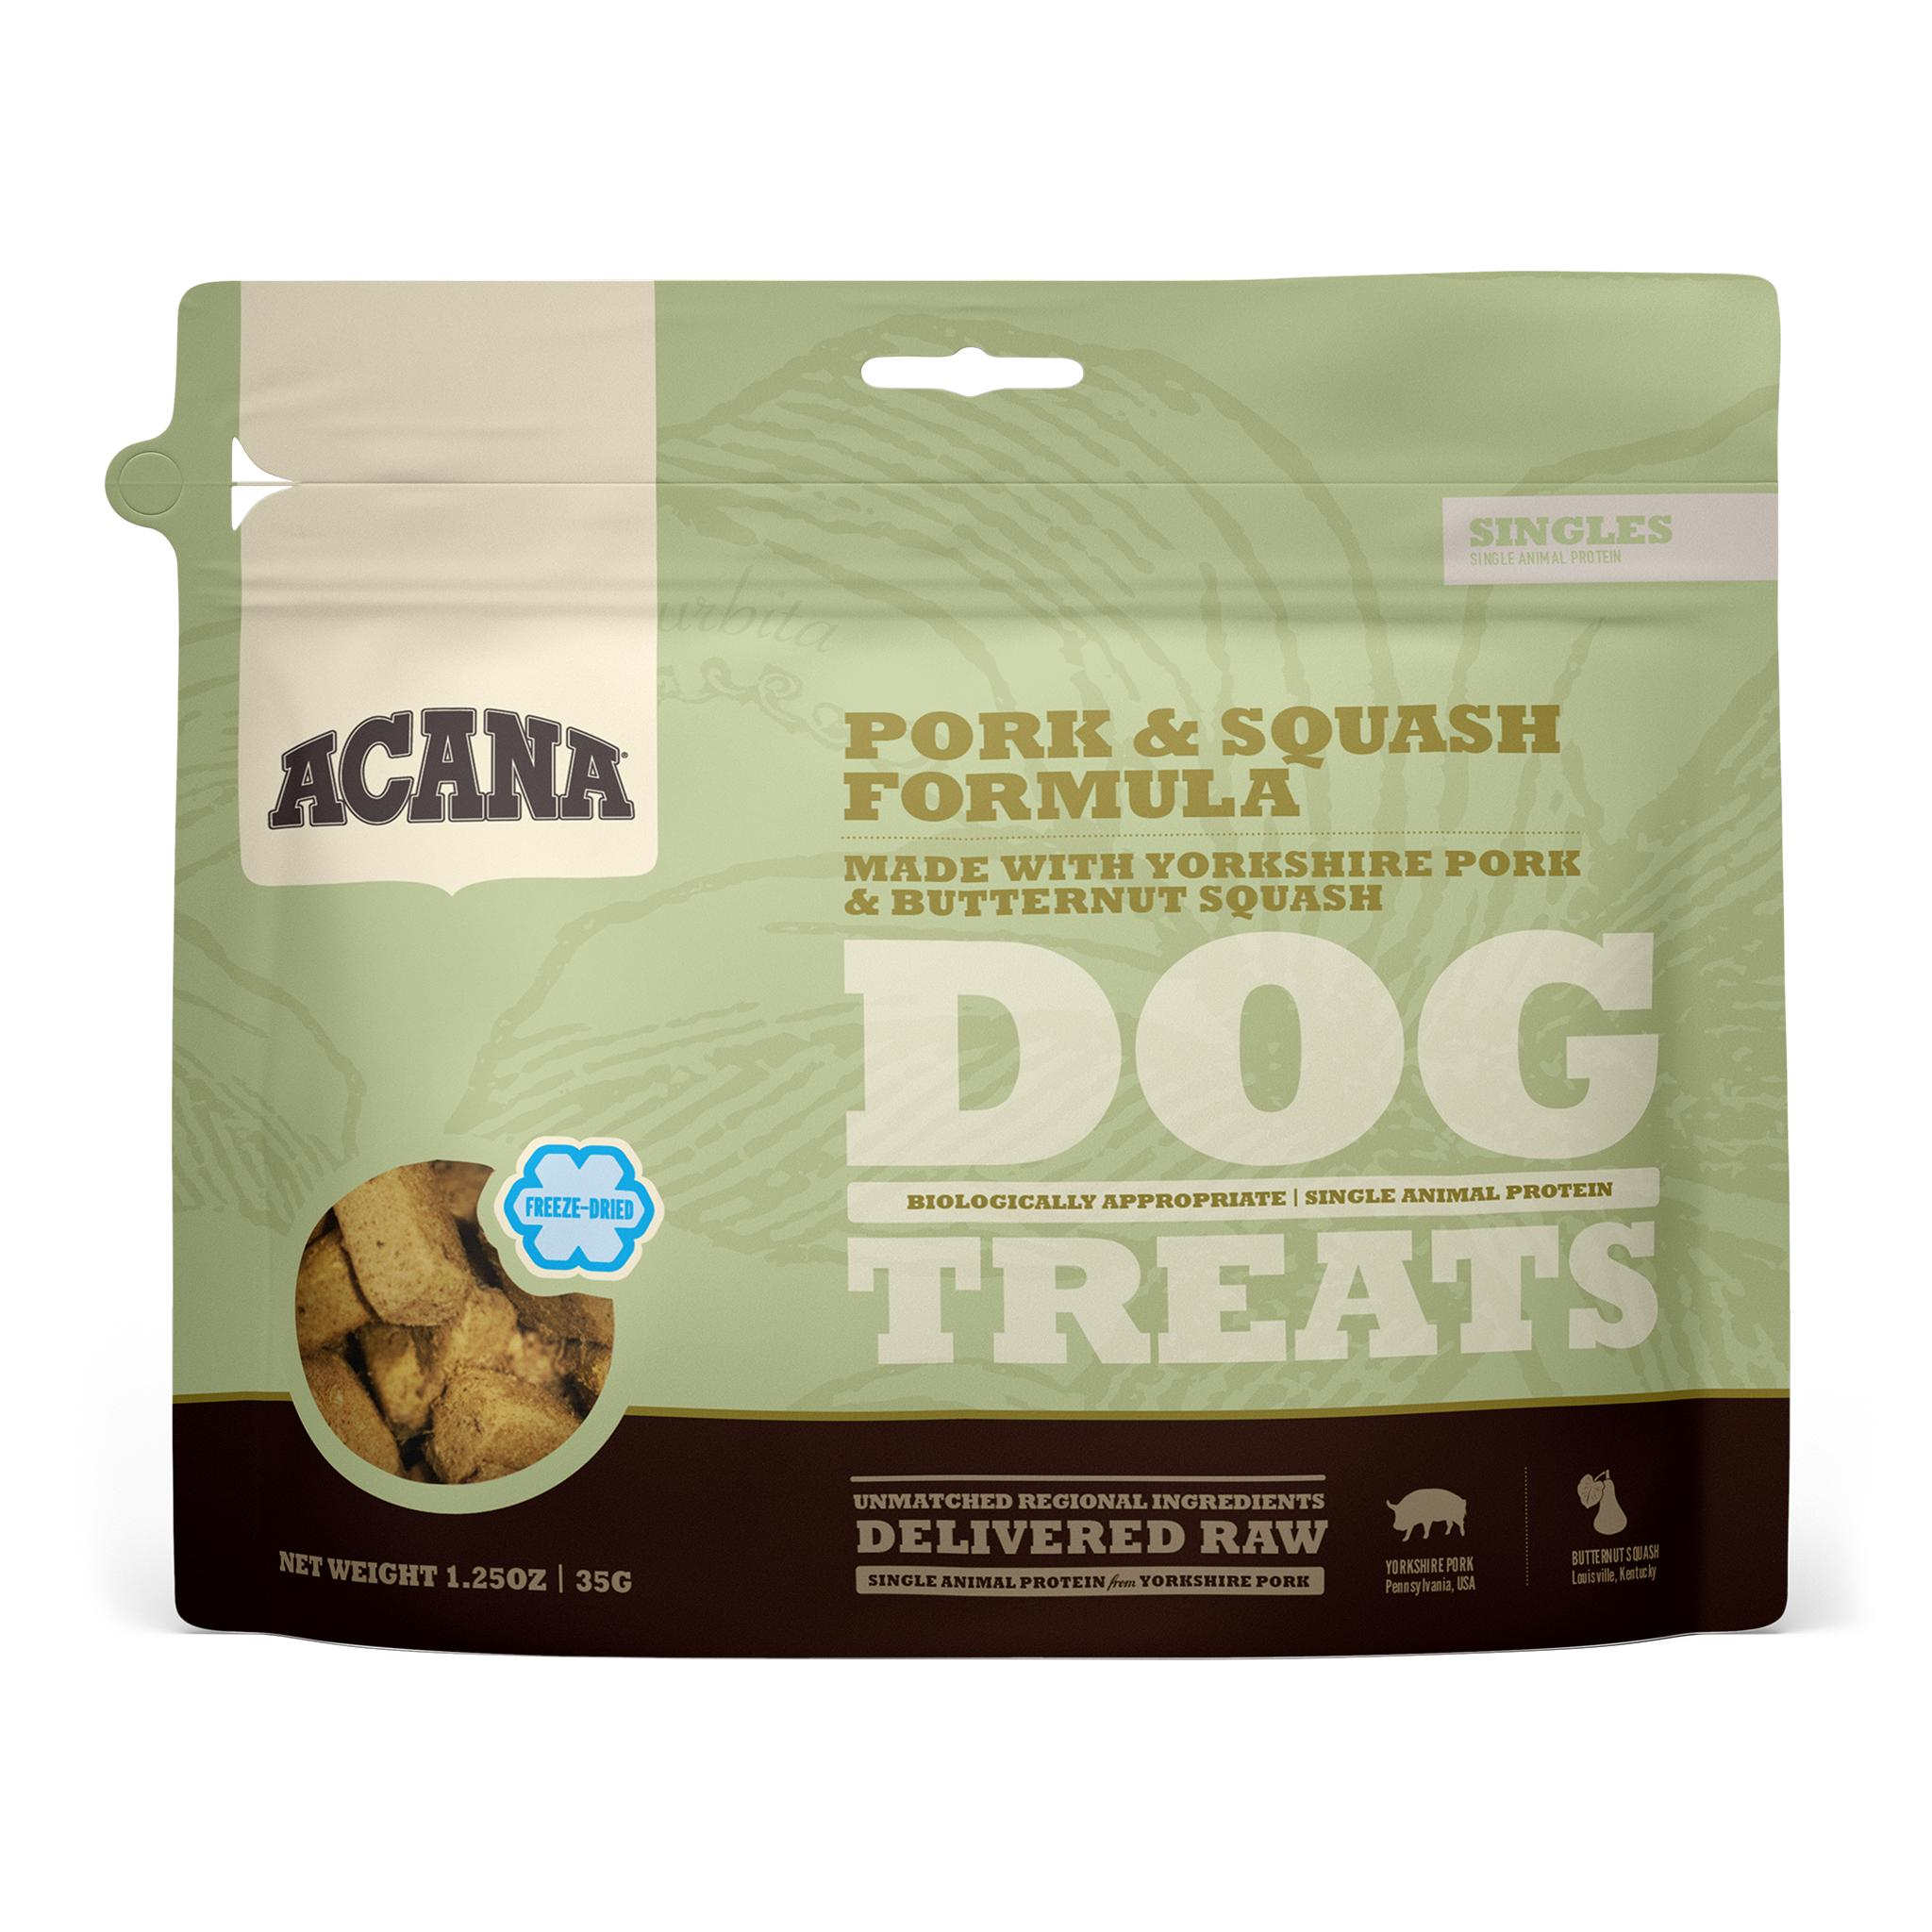 ACANA Singles Pork & Squash Grain-Free Freeze-Dried Dog Treats, 1.5-oz